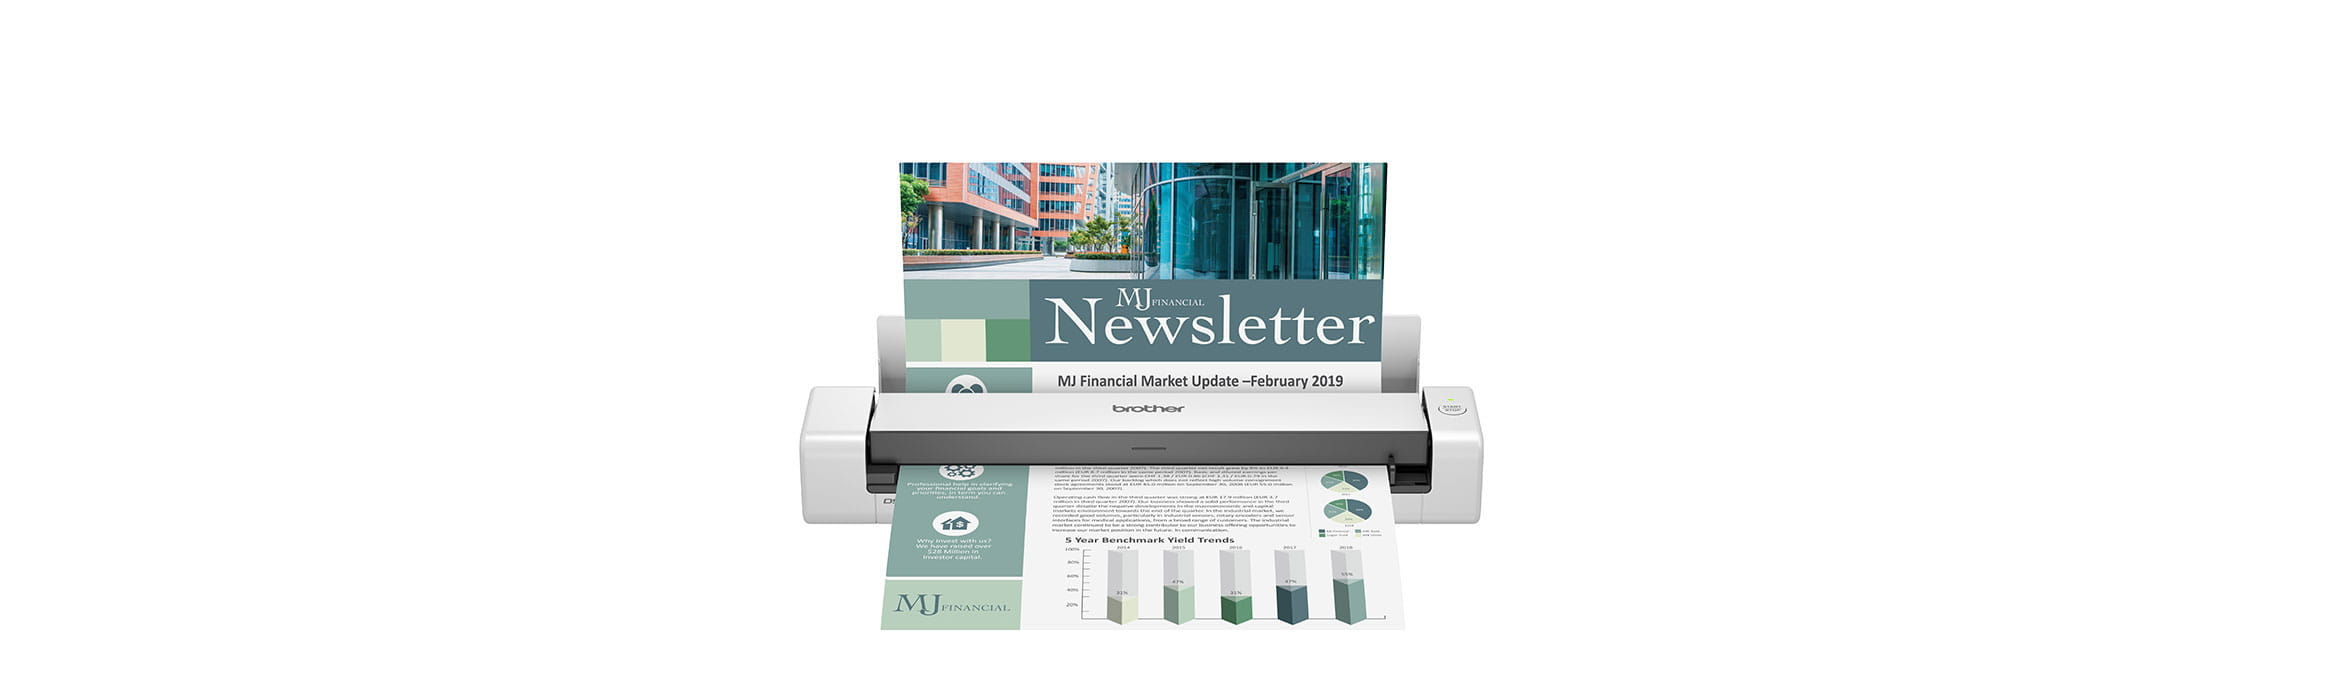 Brother DSmobile DS-740DW portable document scanner with colour A4 document